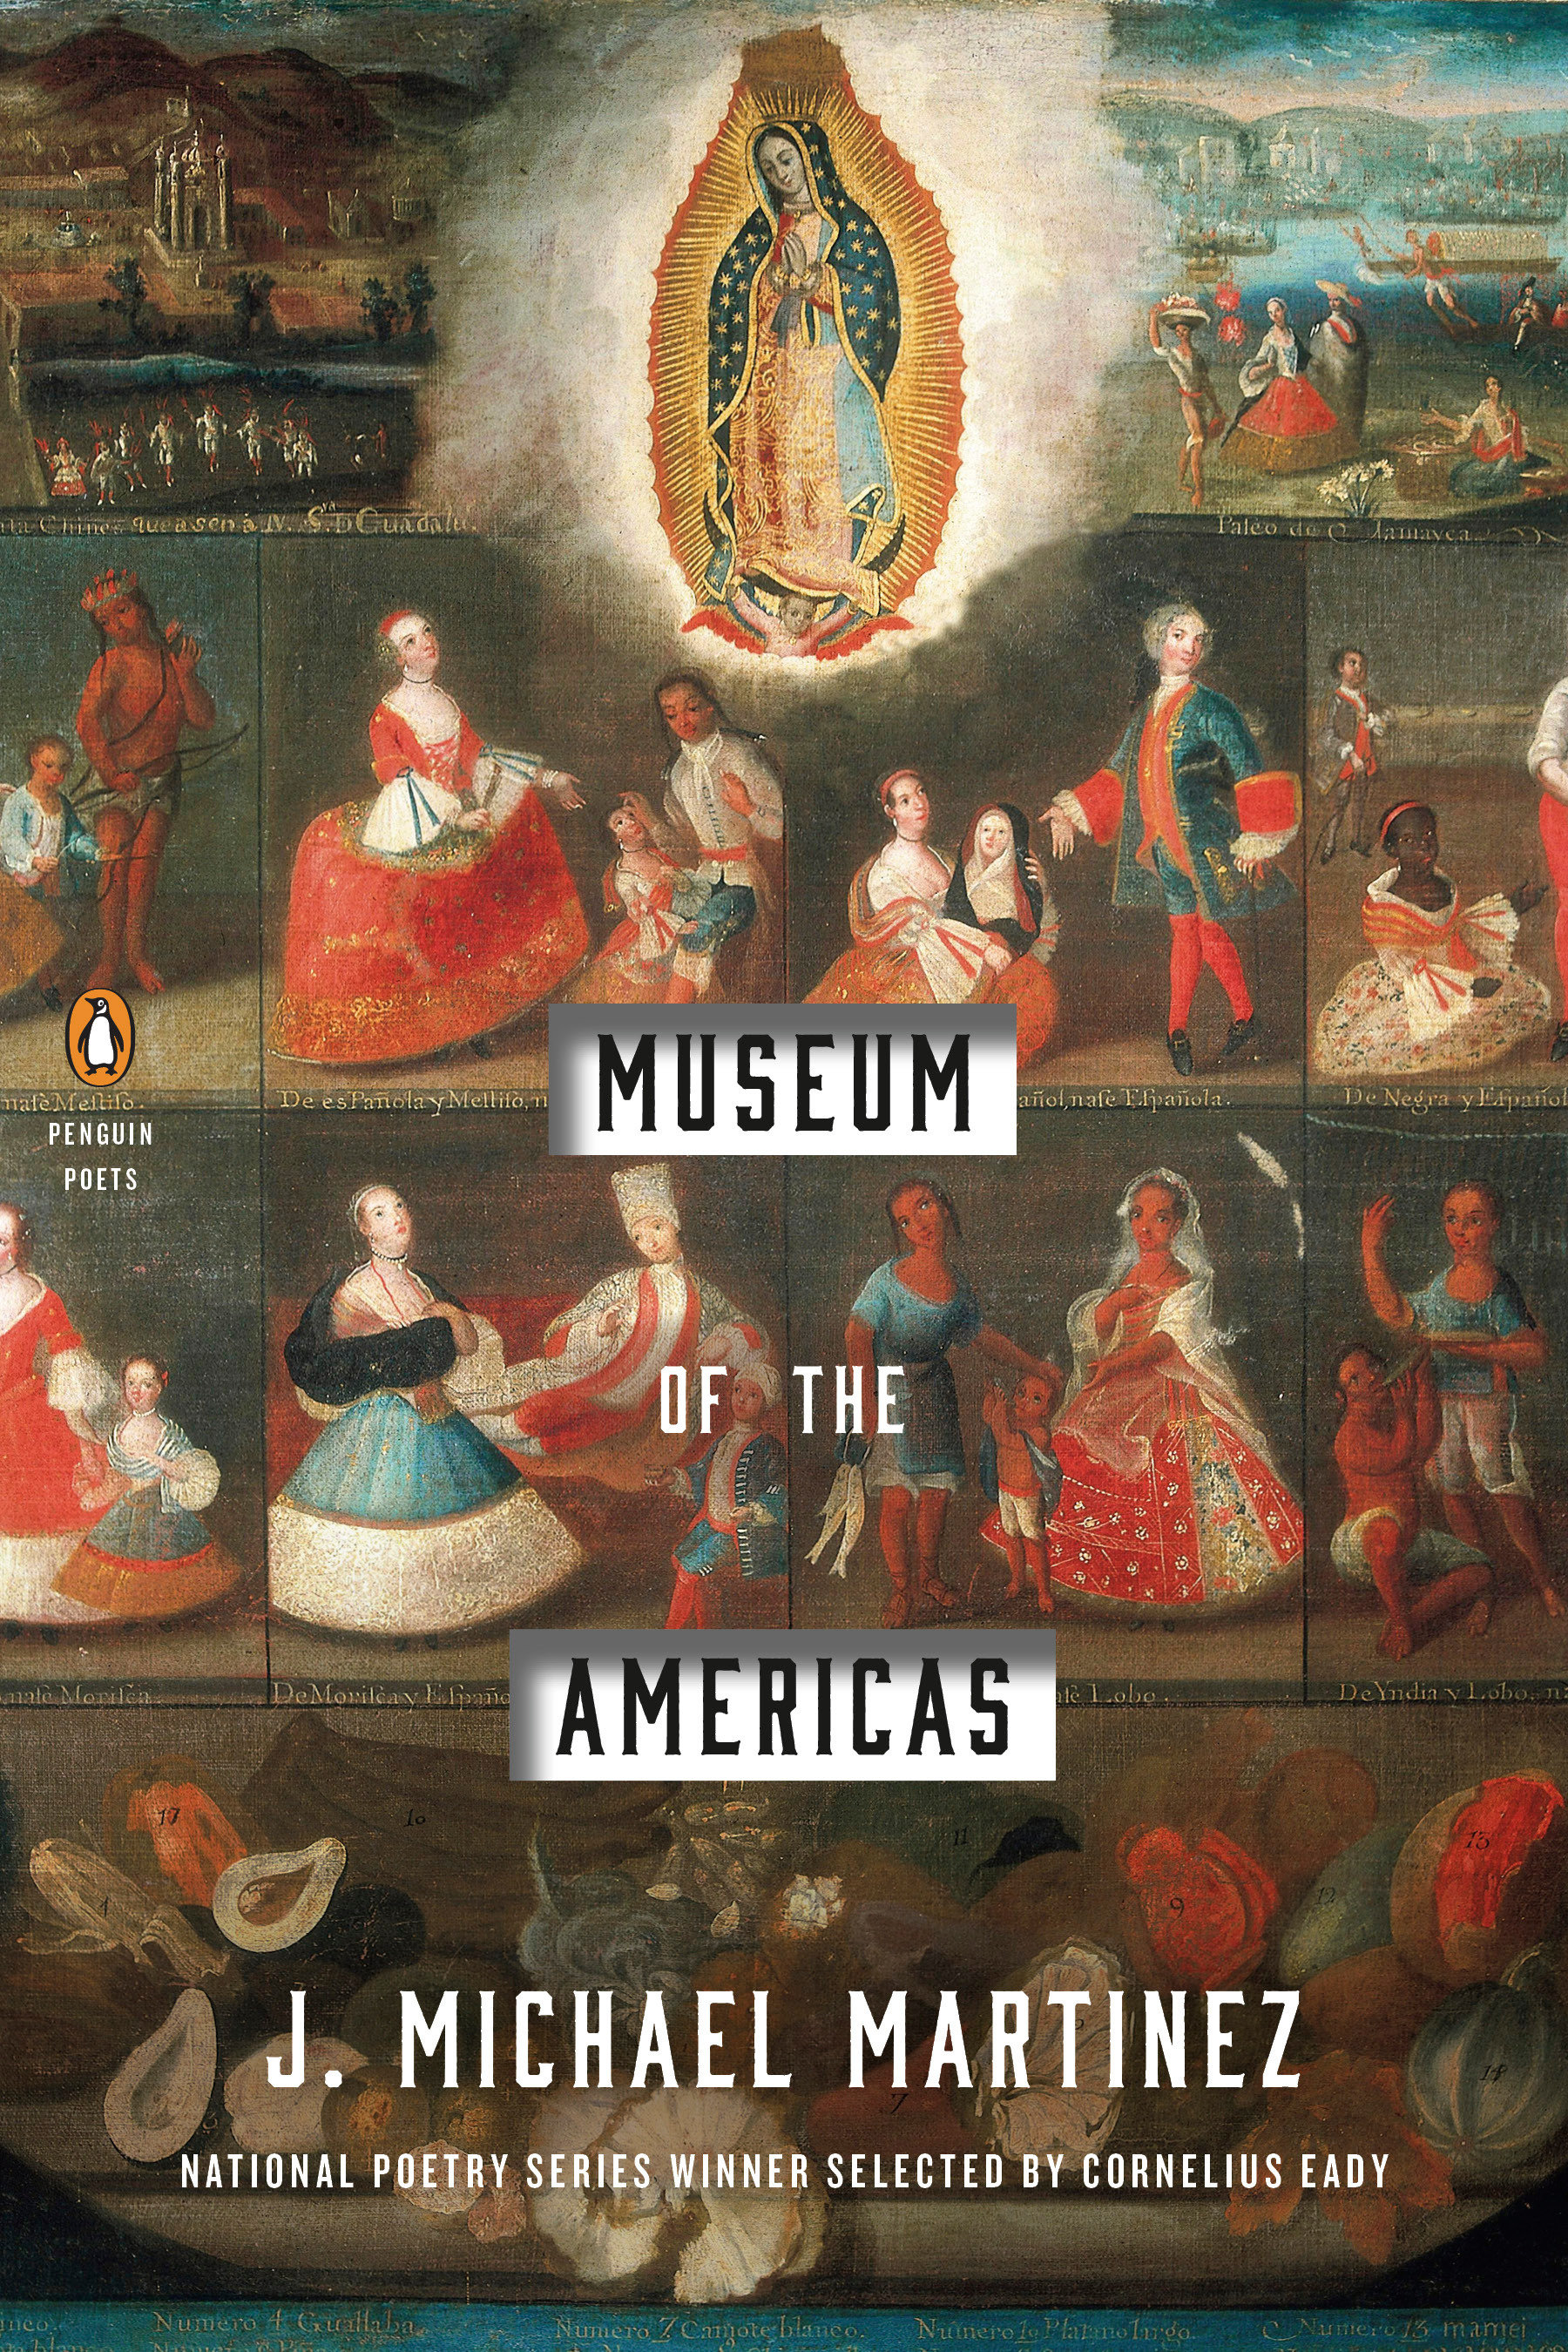 Museum of the Americas [electronic resource]